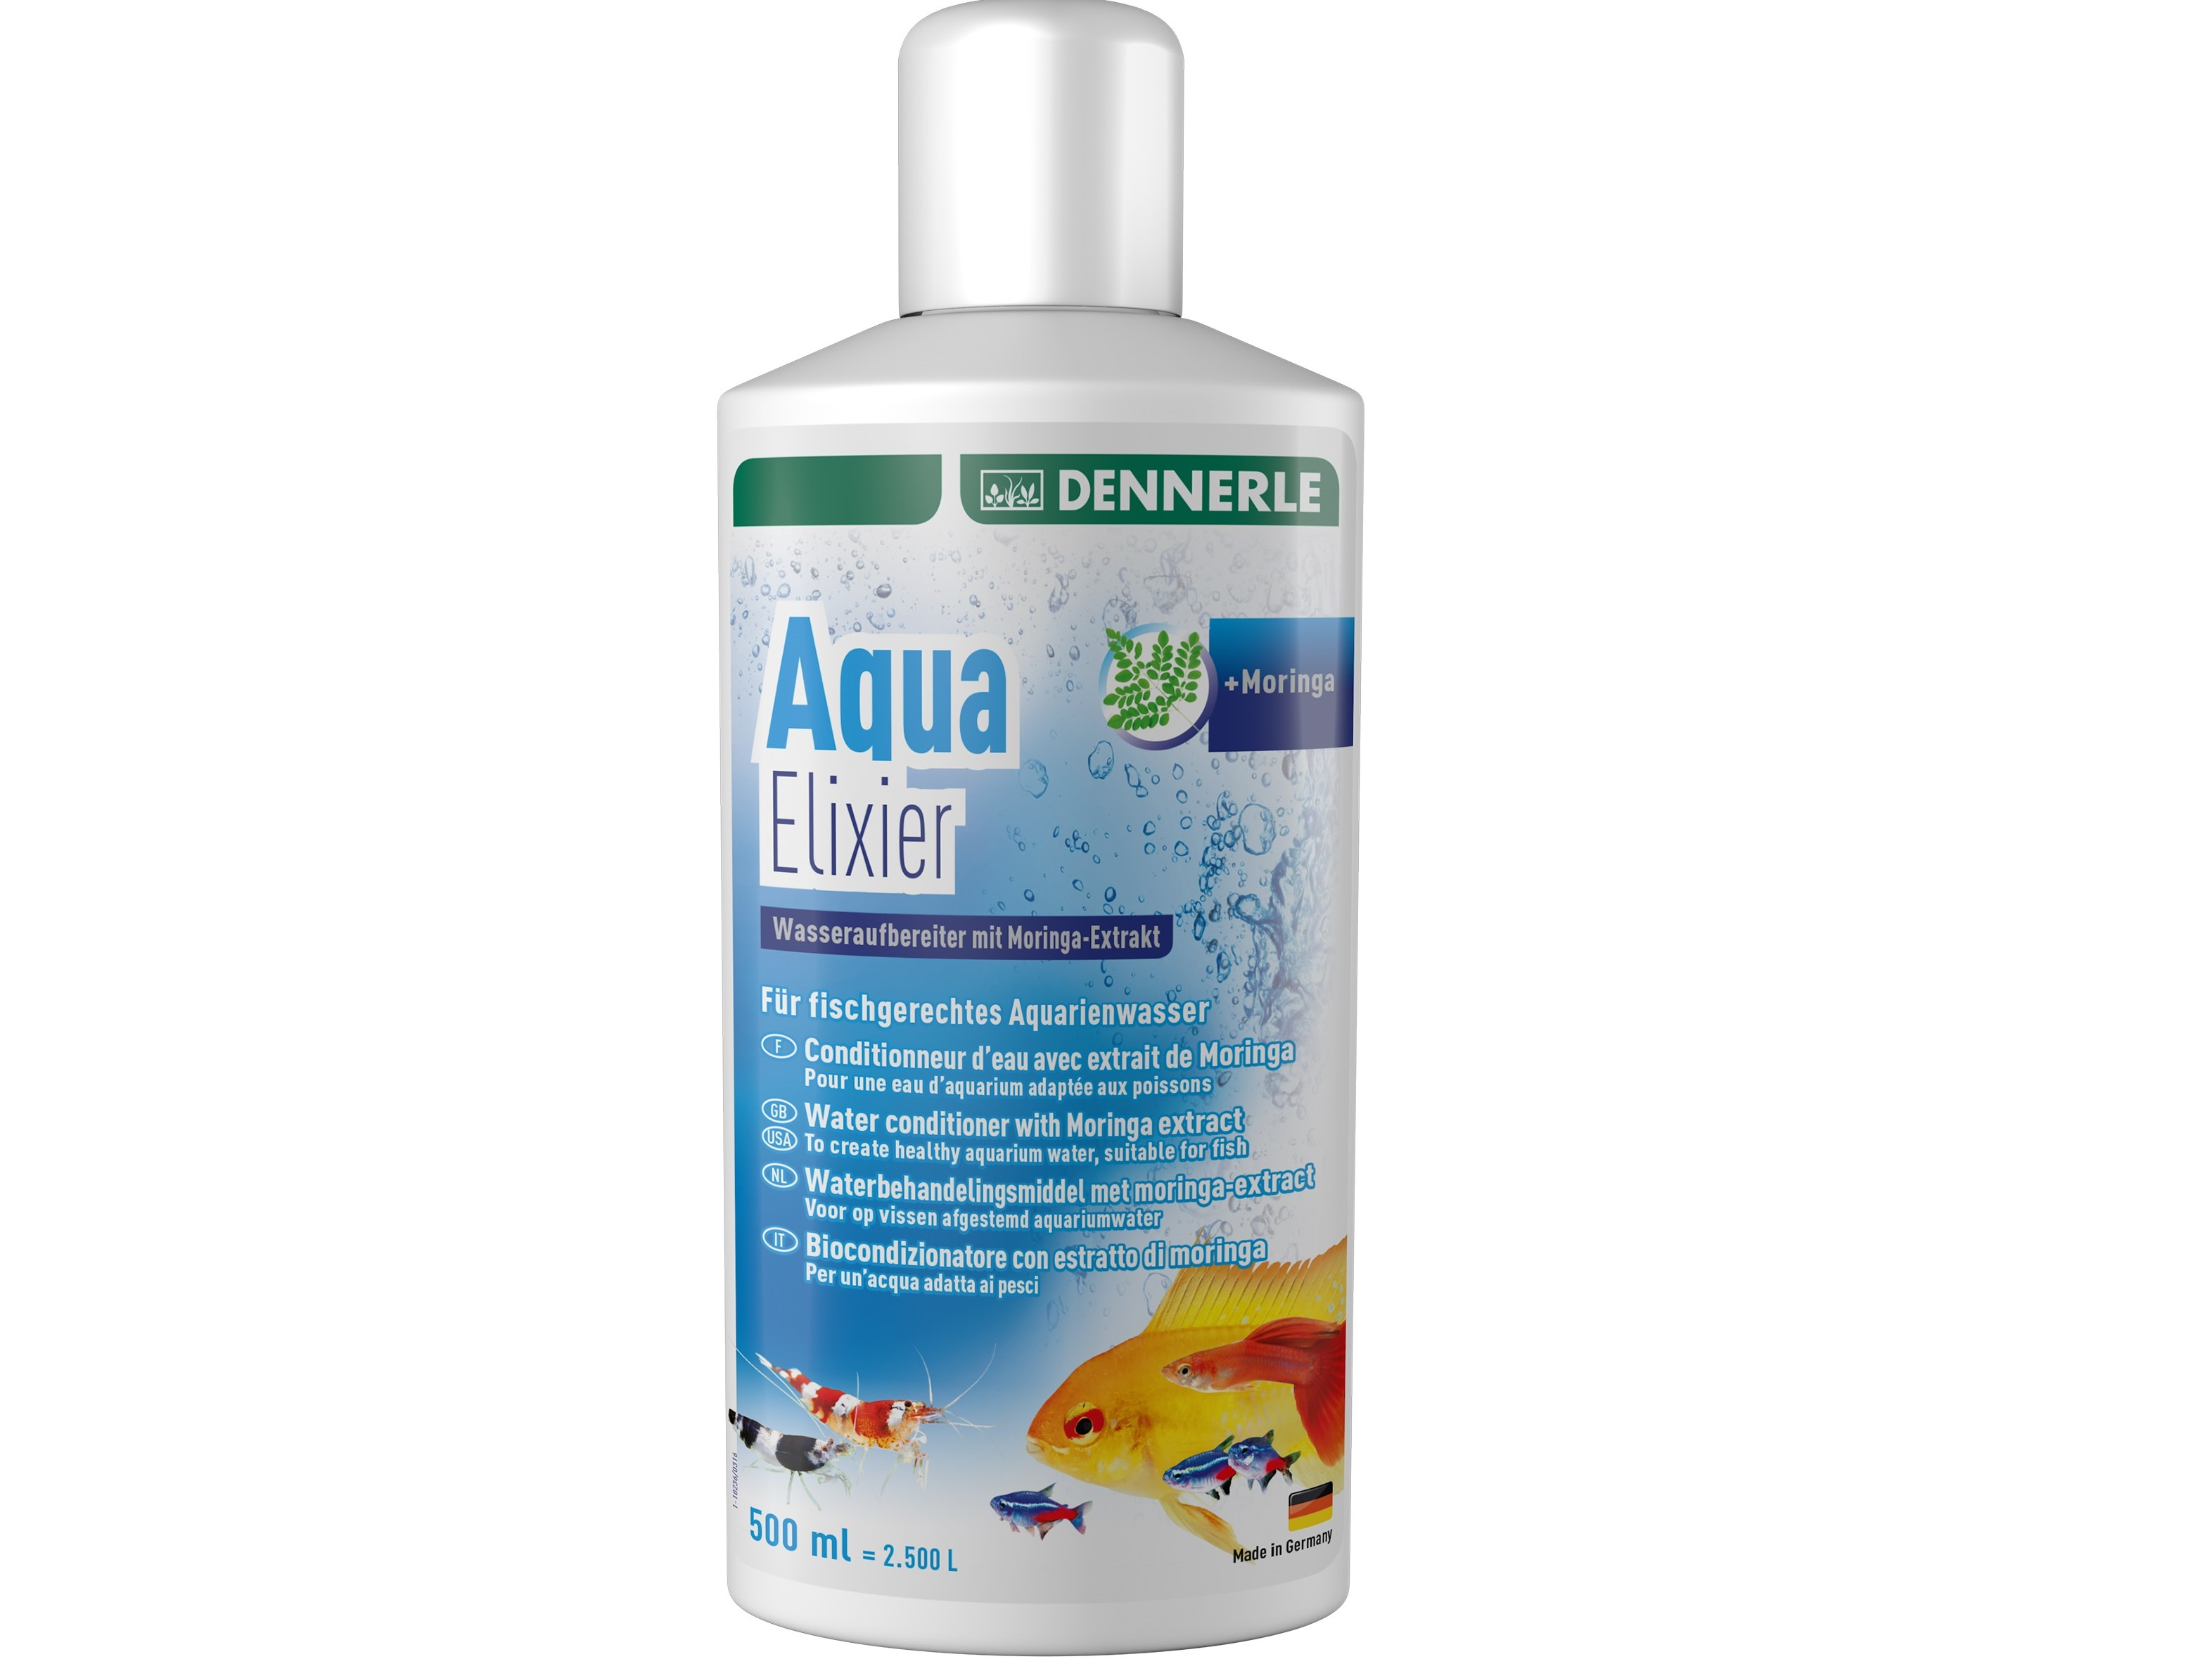 Conditioner general Dennerle Aqua Elixier 500ml pt 2500l